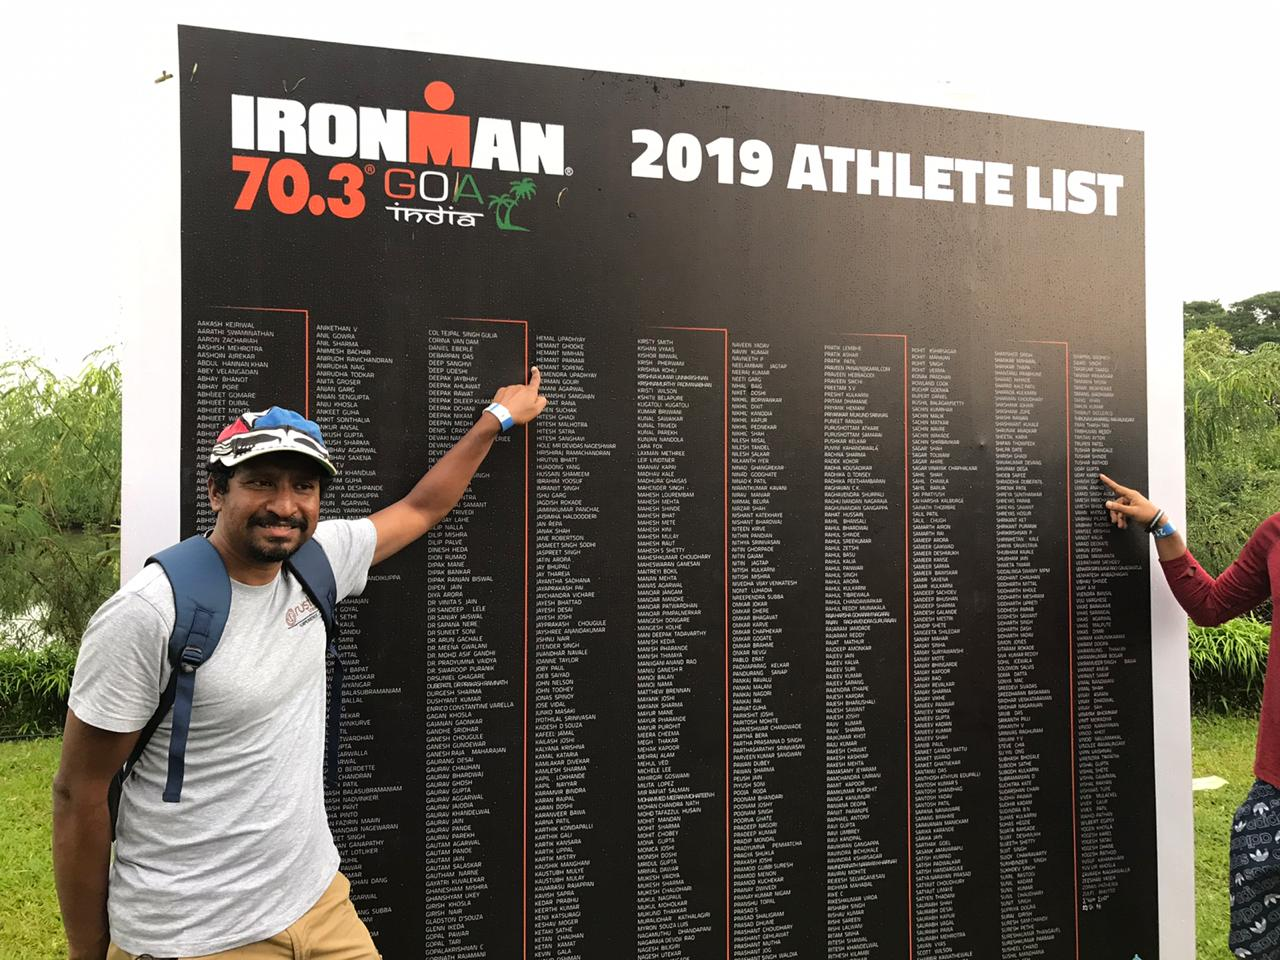 Athlete list_Goa Ironman